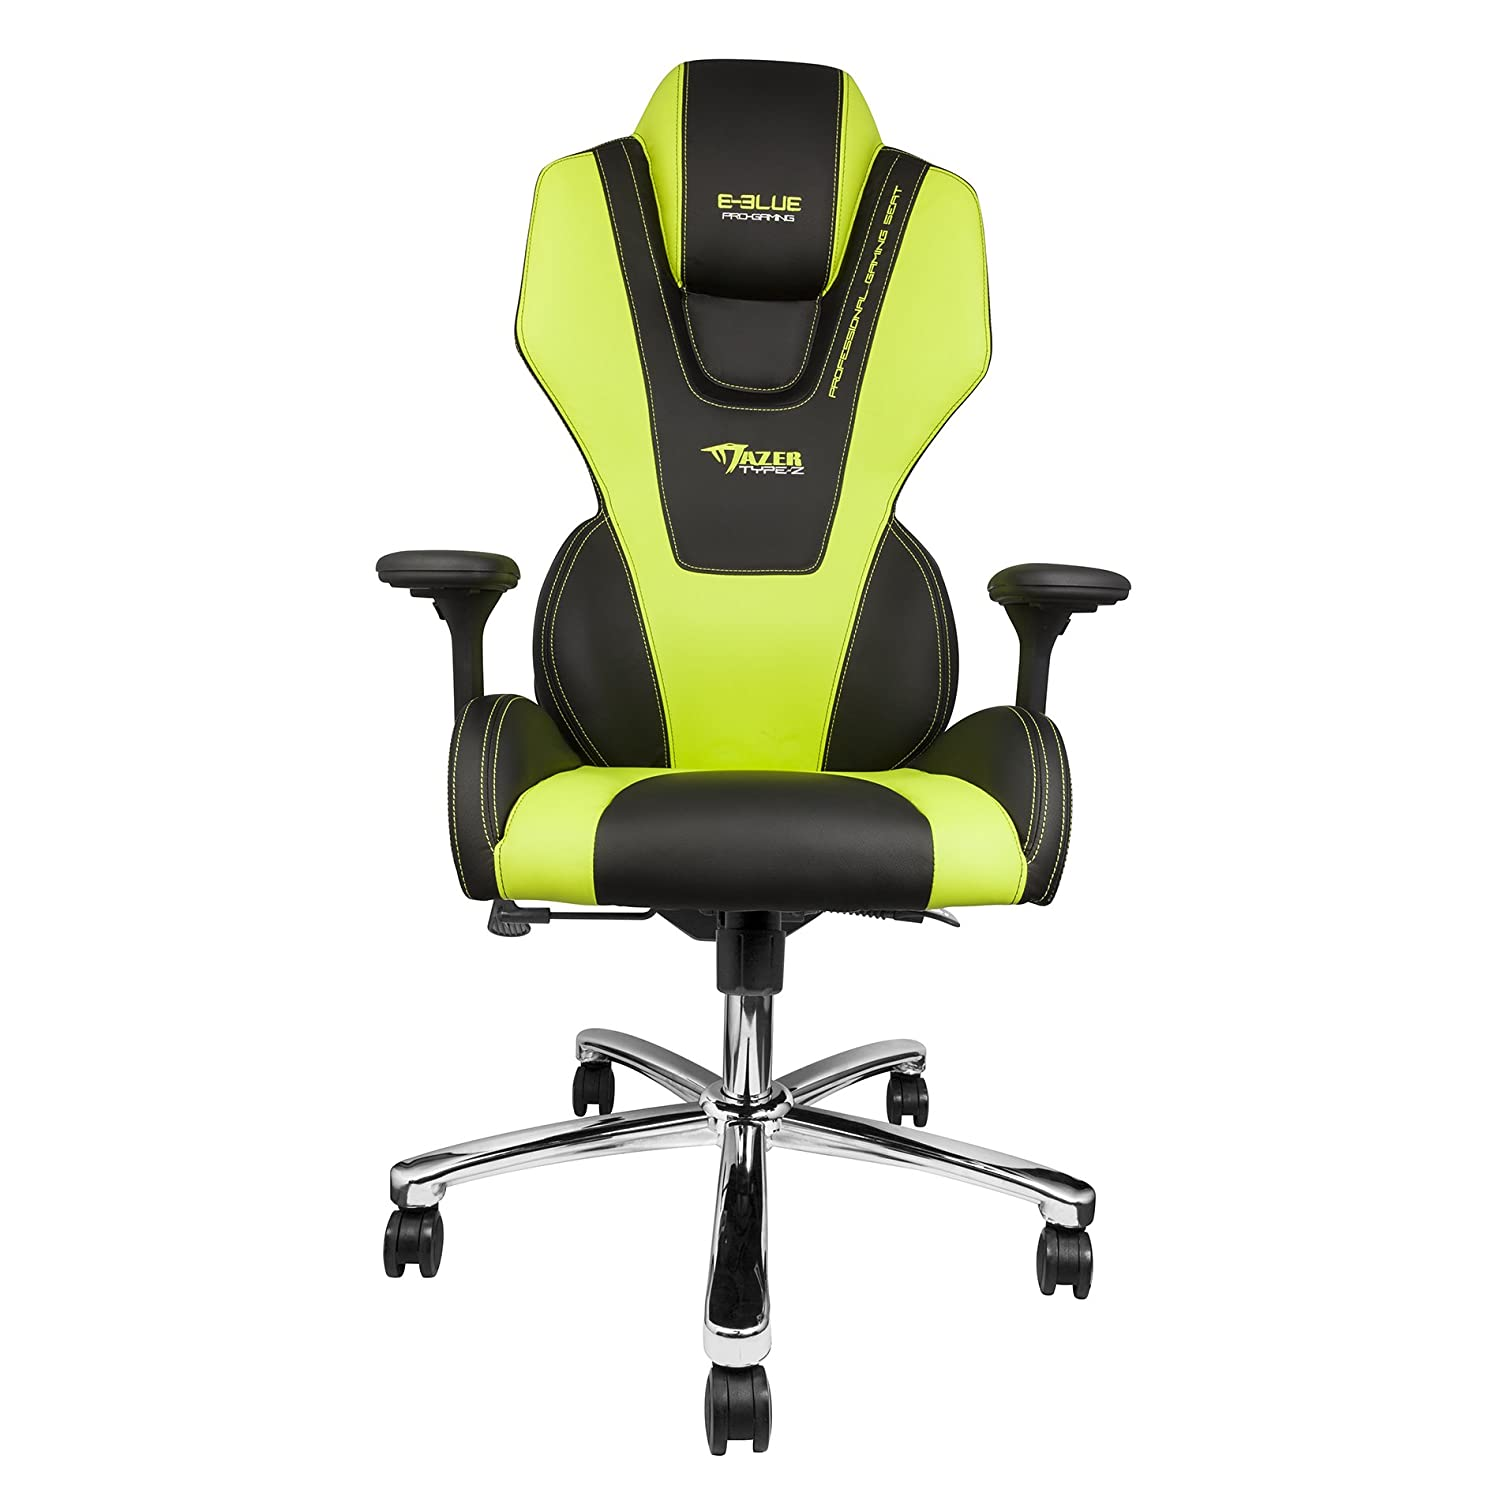 SYMTOP E Blue Mazer Gaming Chair Office Ergonomic Computer ESports Desk  Executive EEC304GR Green: Amazon.co.uk: Kitchen U0026 Home